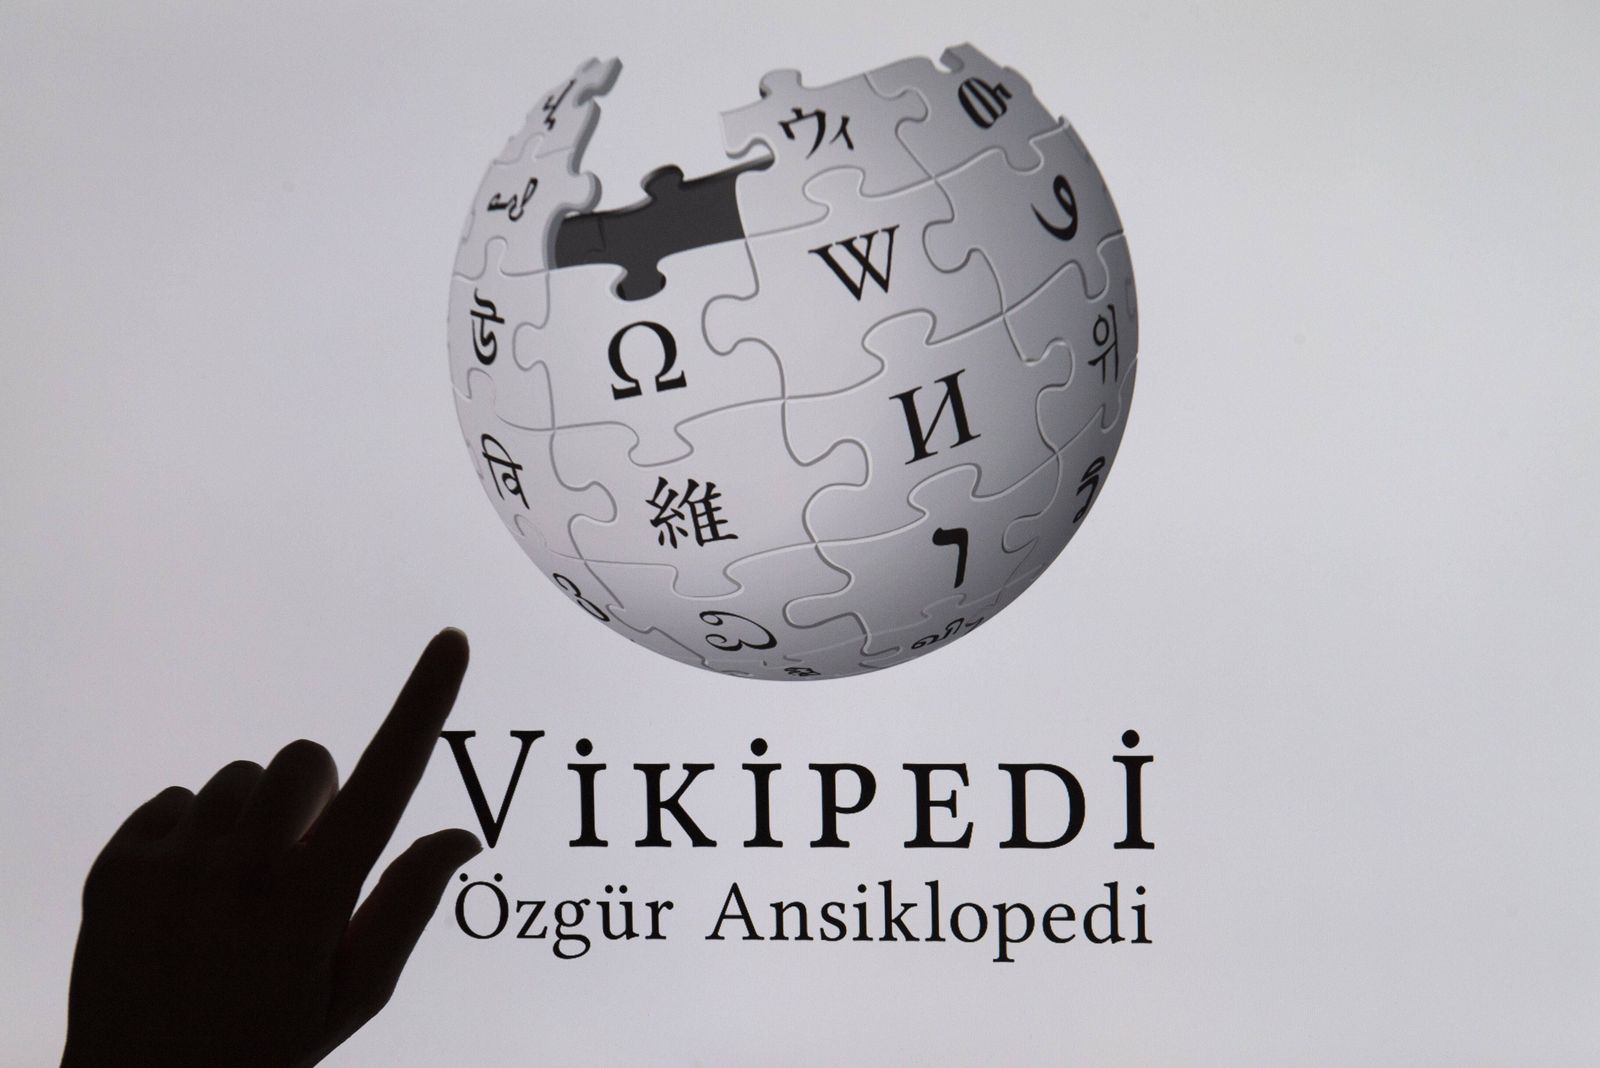 Turkey lifted its more than two-year ban on accessing Wikipedia, weeks after the country s highest court ruled that the